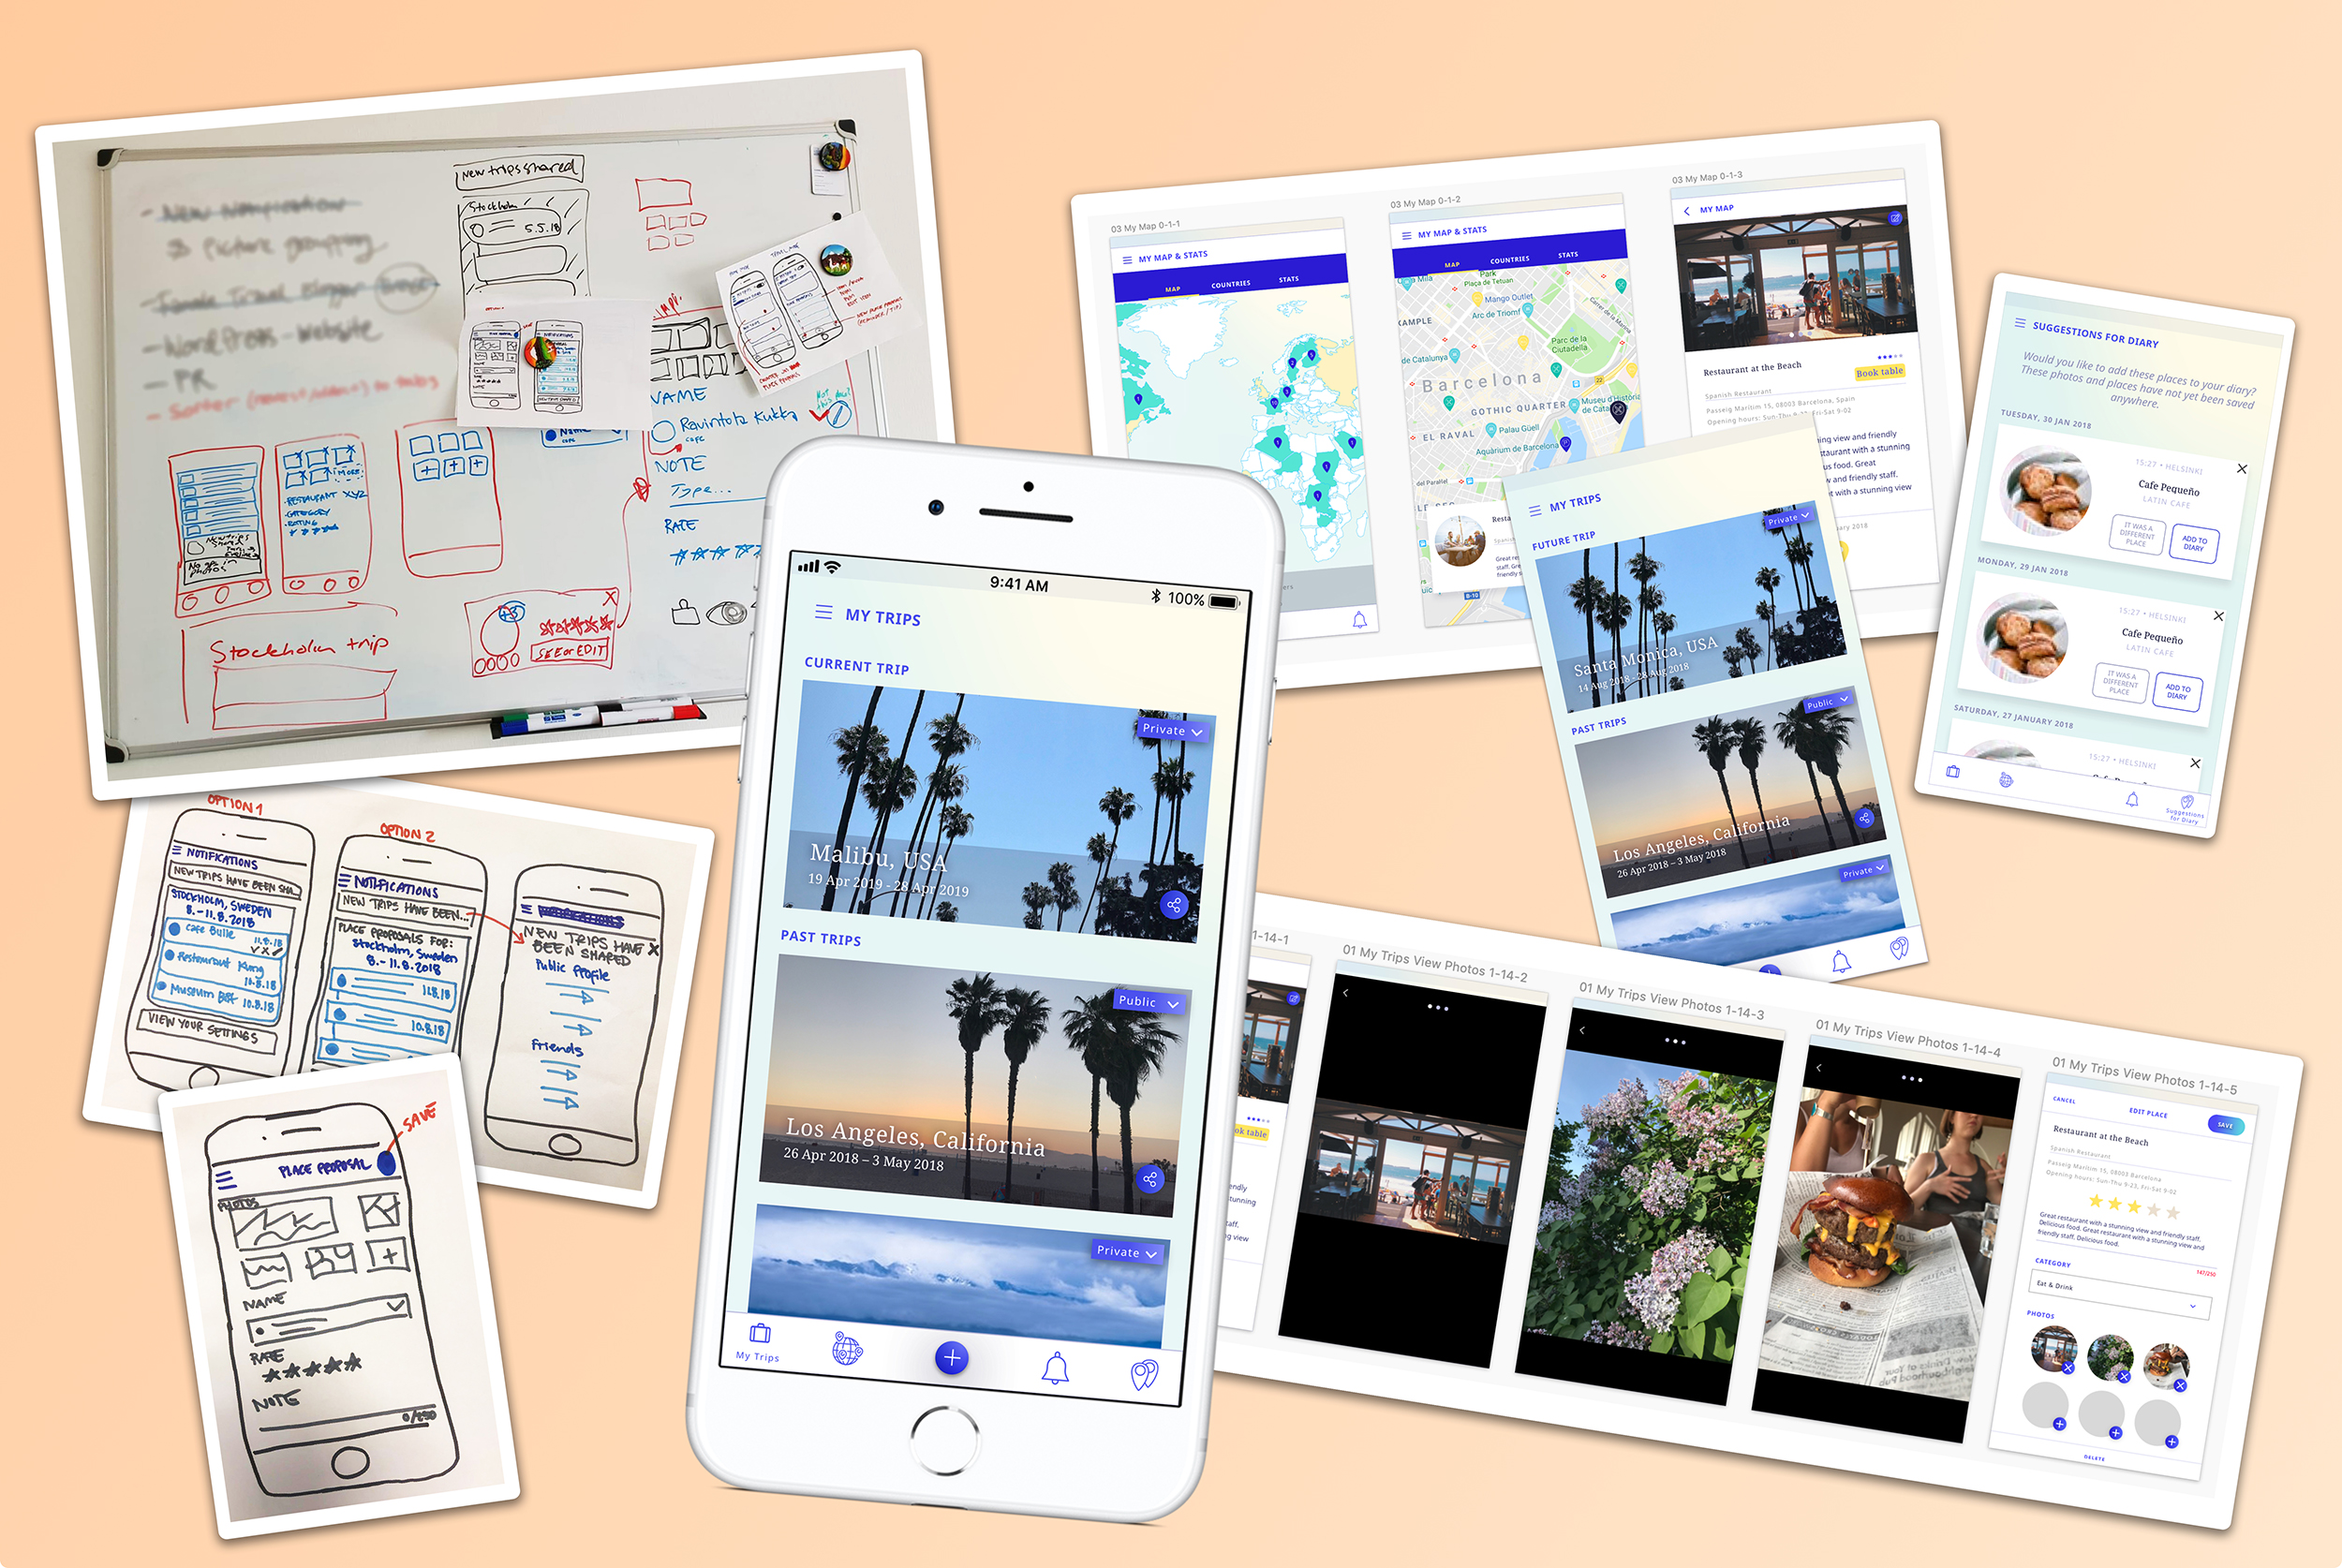 Here are some images of the UX & UI process I was working on for Wowanders app.